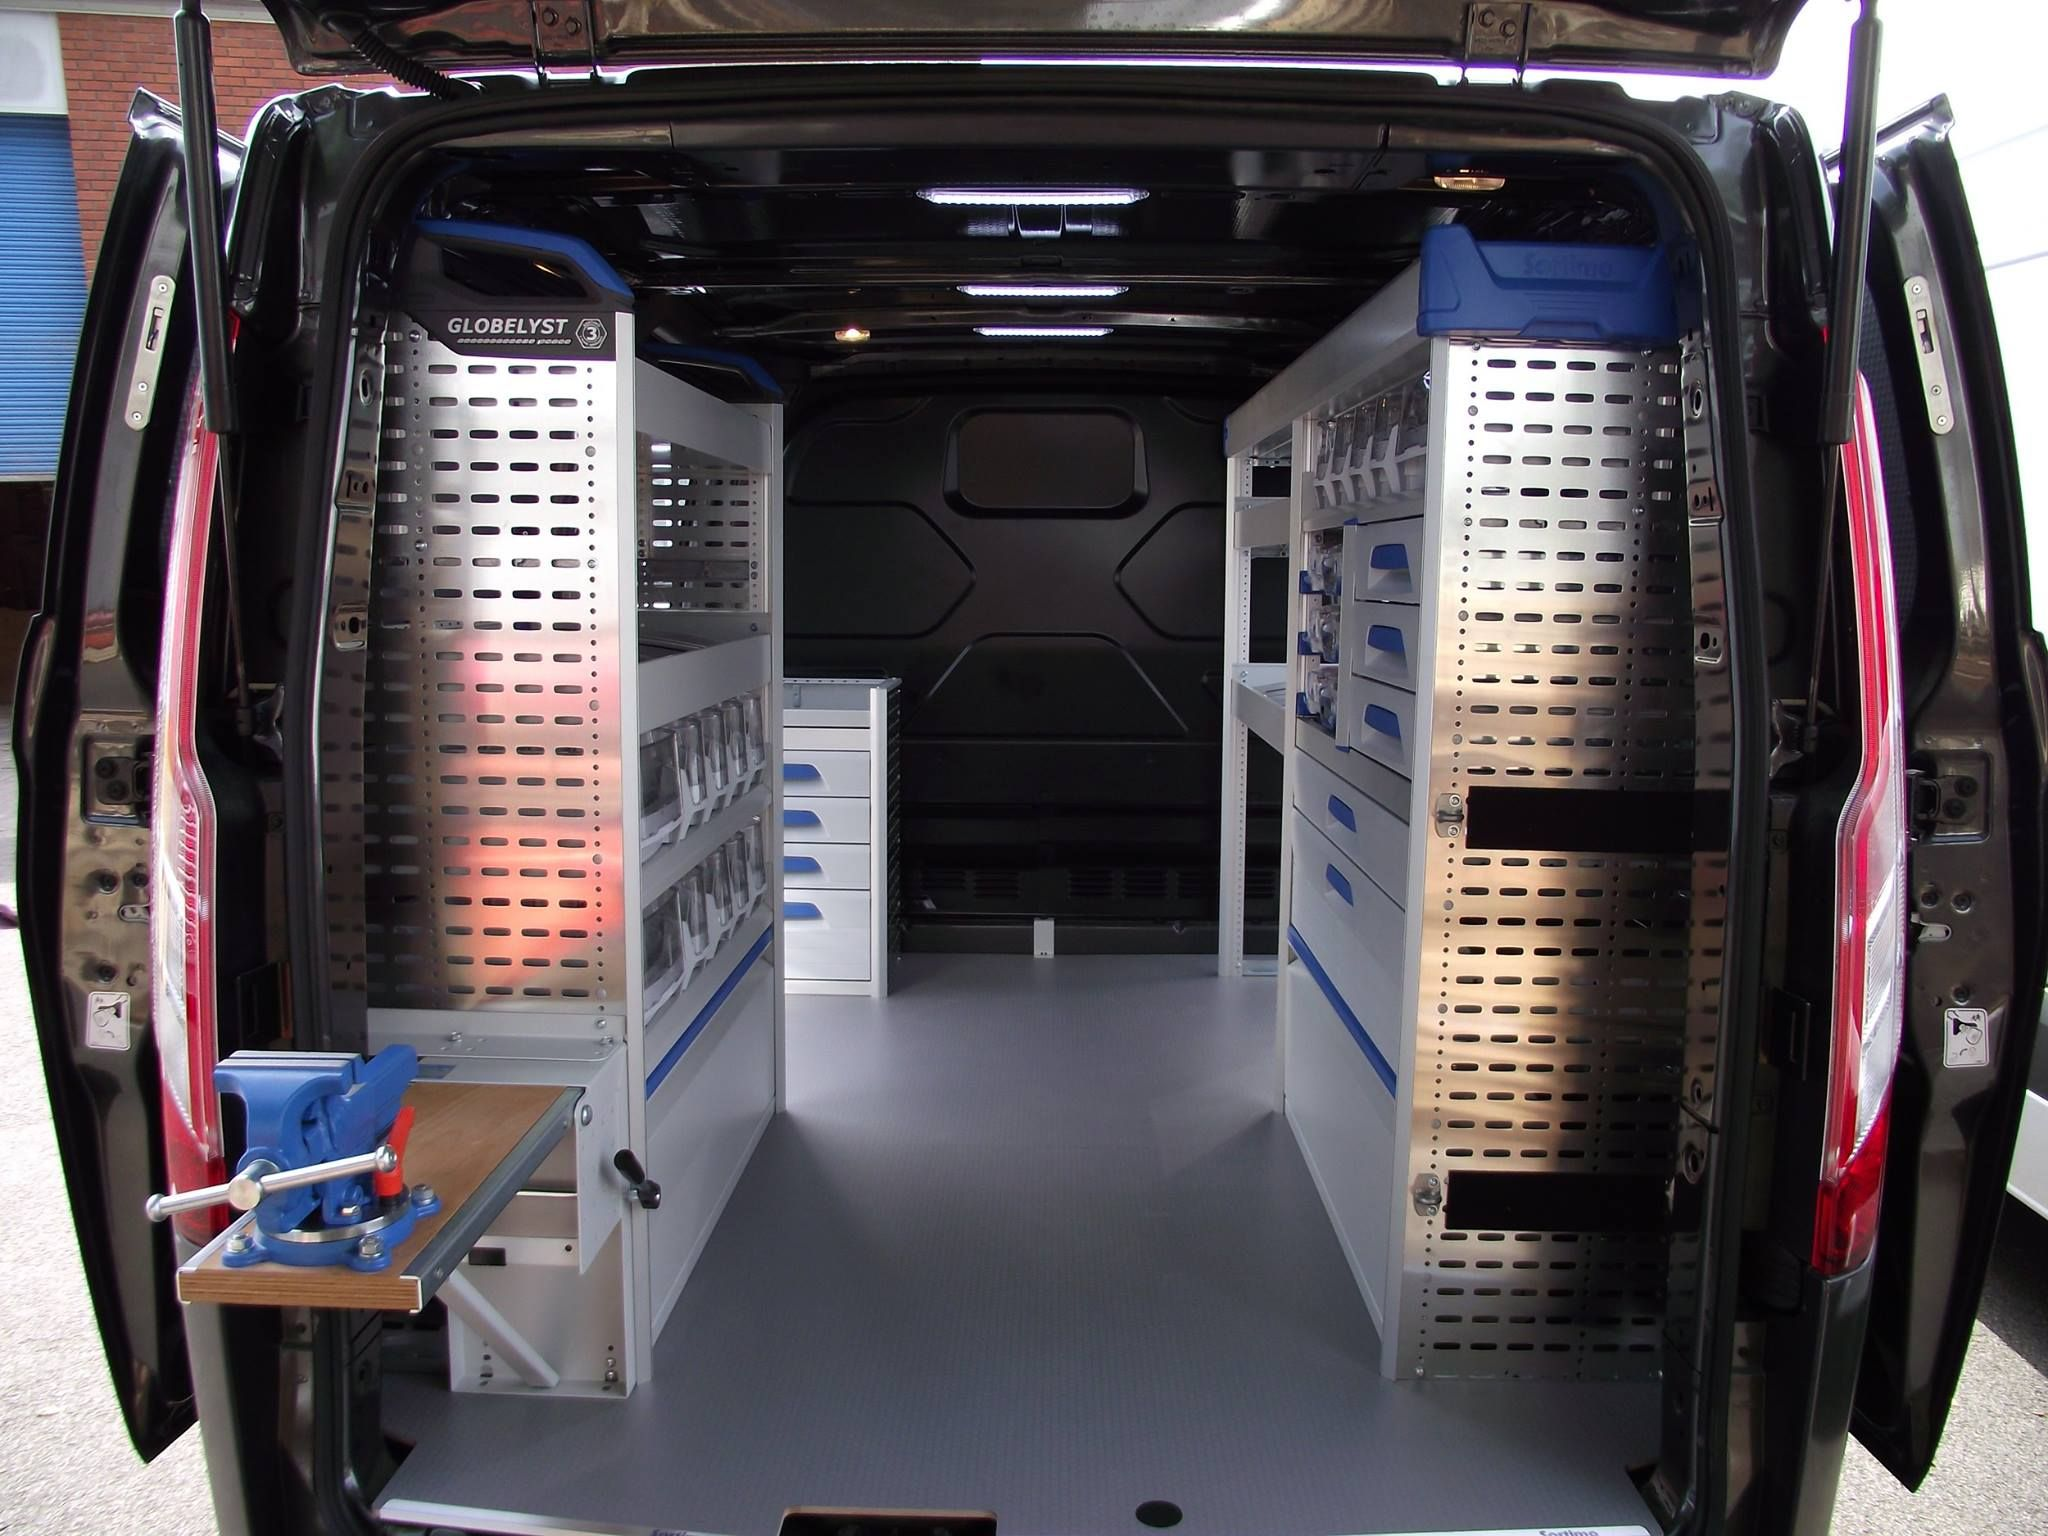 Ford Custom Sport Installed With Sortimo Racking Fitted To The Near Side And Off Side Wednesdaymotivation Sortimo Racking Vanlife